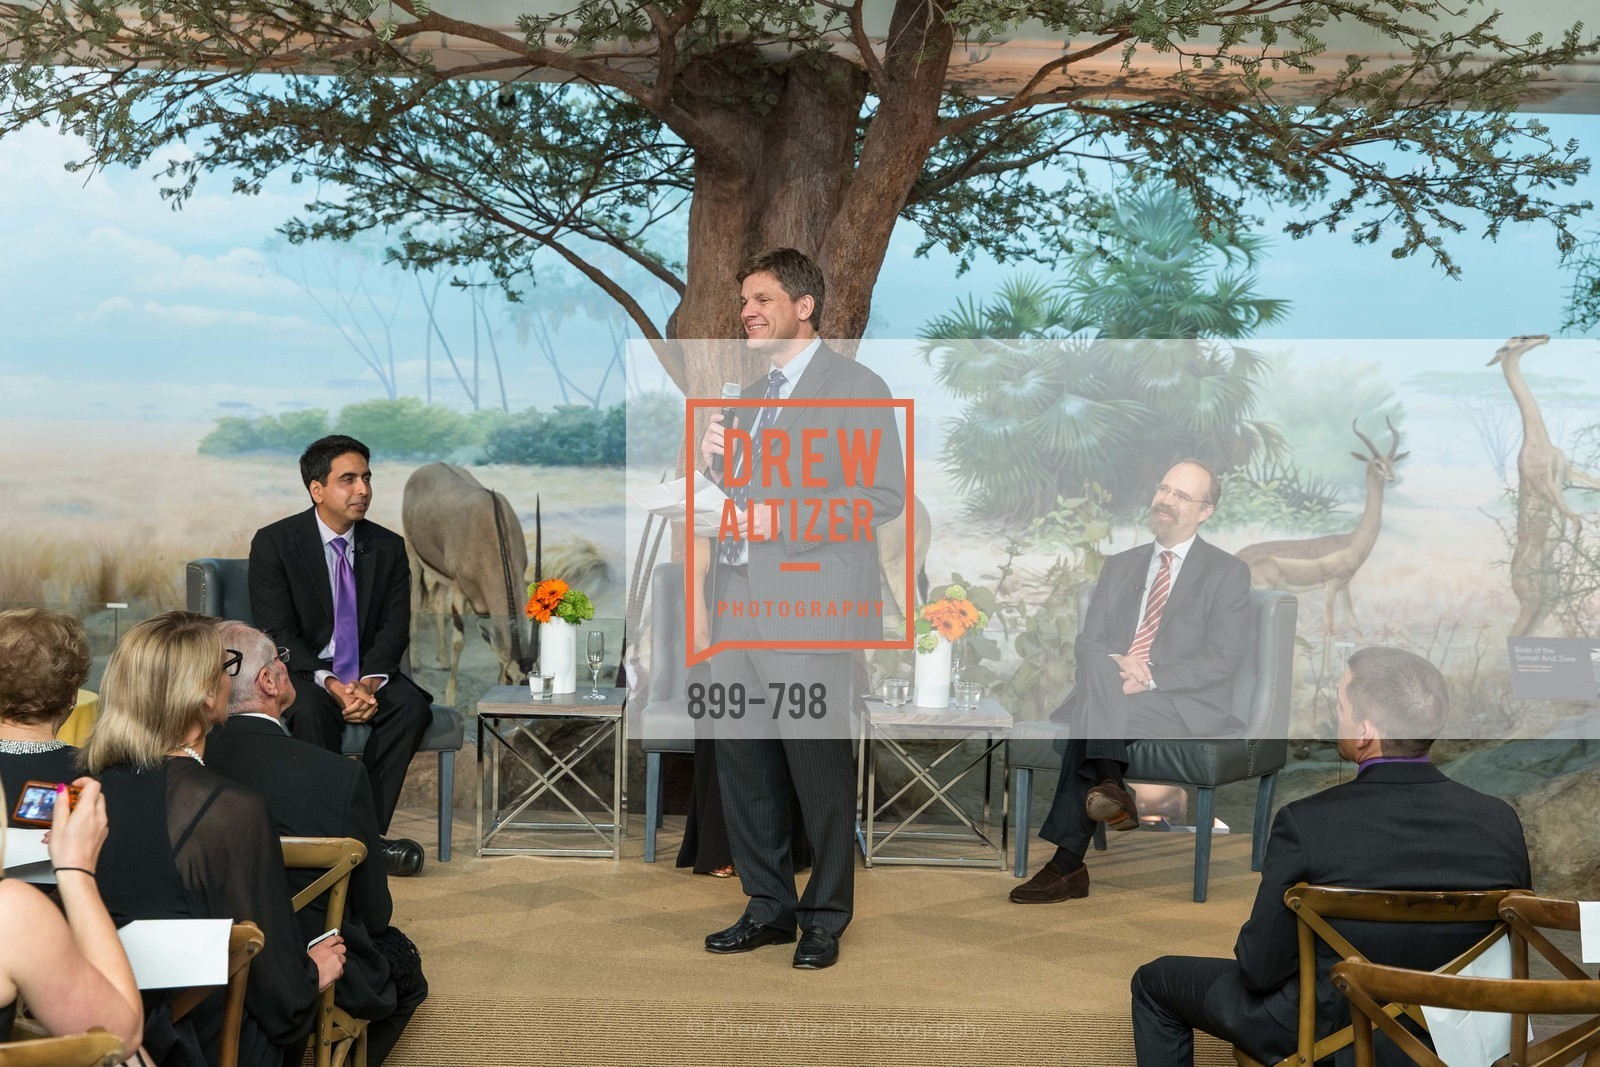 Sal Khan, Bill Duhamel, Adam Messinger, CALIFORNIA ACADEMY OF SCIENCES - Big Bang Gala 2015, US, April 23rd, 2015,Drew Altizer, Drew Altizer Photography, full-service agency, private events, San Francisco photographer, photographer california